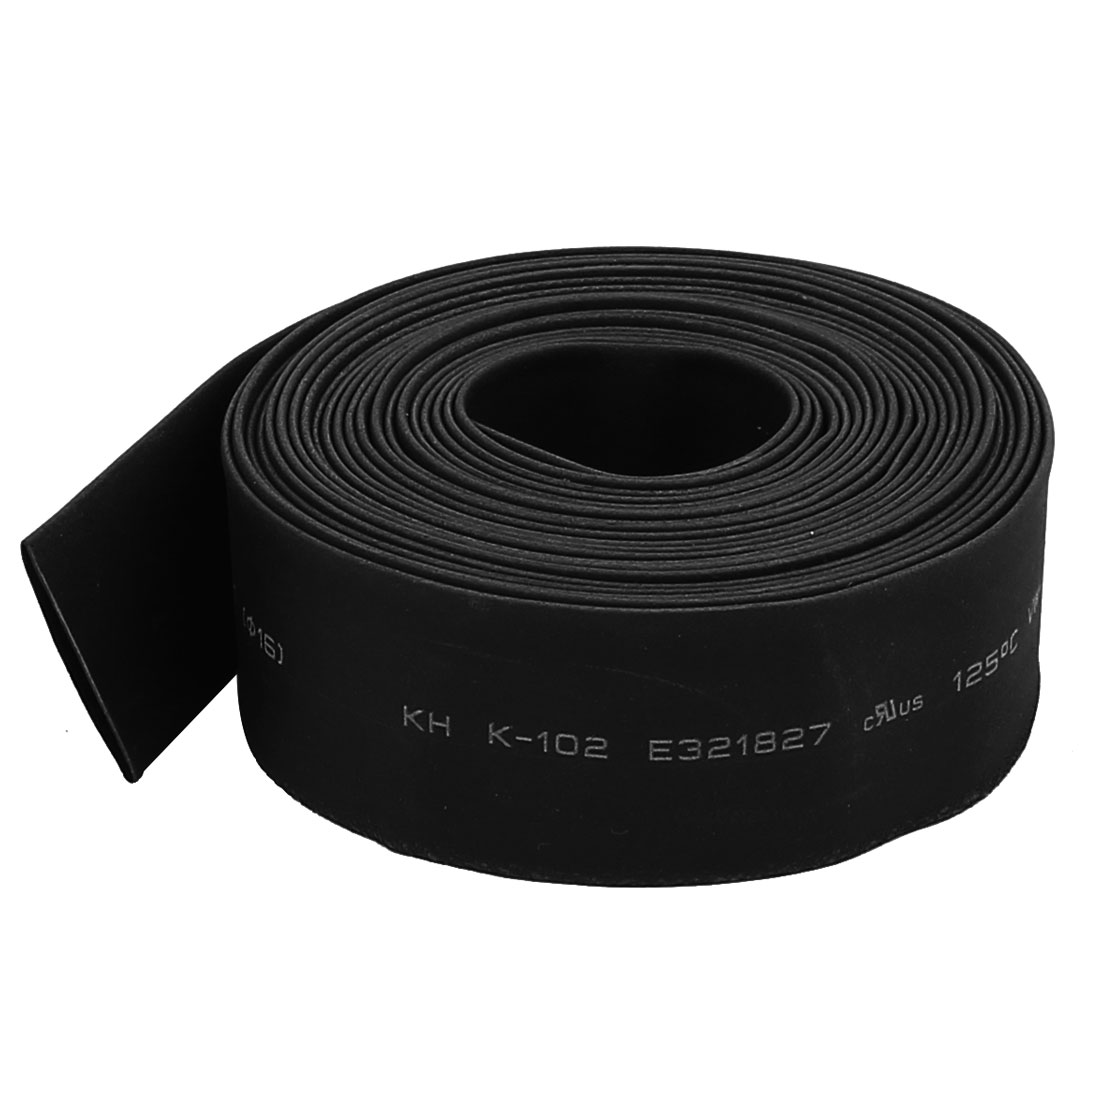 Black 16mm Dia 2:1 Heat Shrink Tubing Shrinkable Tube Insulated Hose Sleeving Cable Wrap 3.4M 11Ft Long